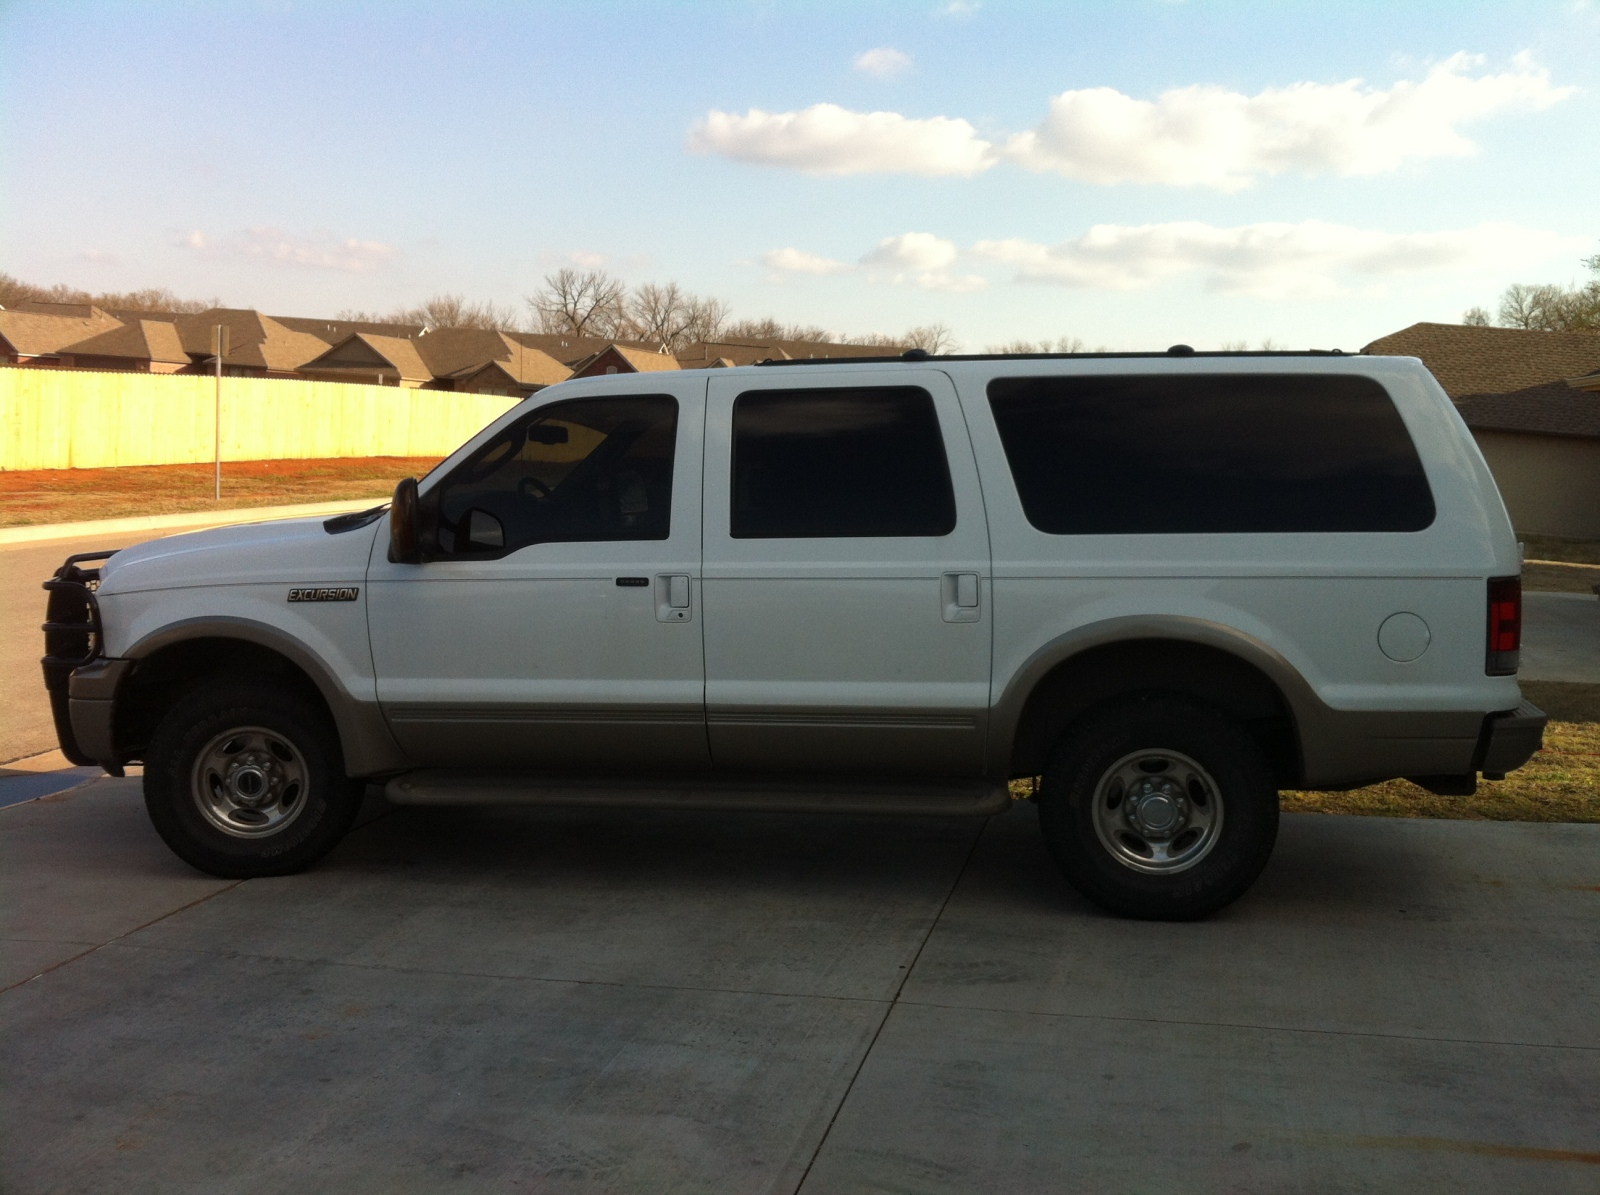 2005 ford excursion diesel 4x4 low mileage oklahoma shooters. Black Bedroom Furniture Sets. Home Design Ideas